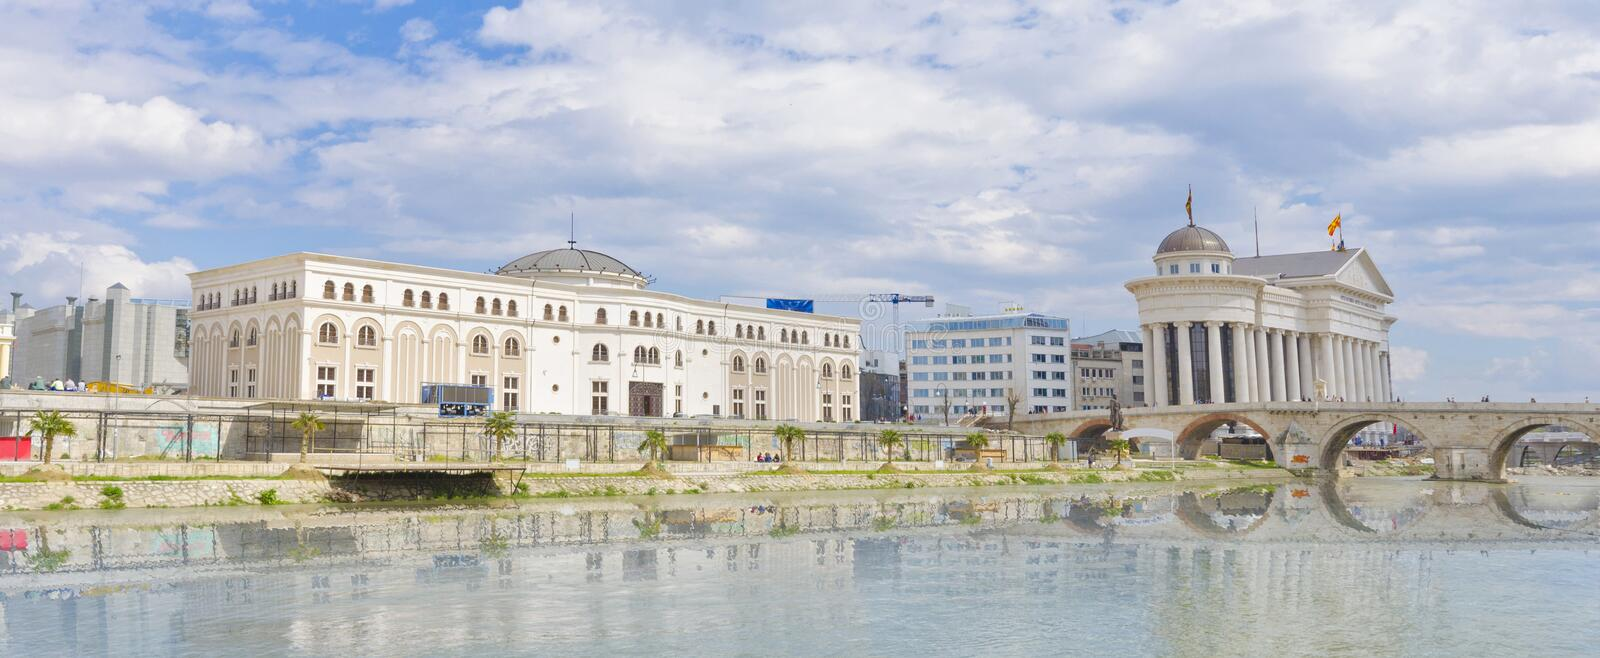 Beautiful old stone bridge and archaeological museum in Skopje, Macedonia. Beautiful old stone bridge and archaeological museum of Macedonia, Vardar river wather stock image